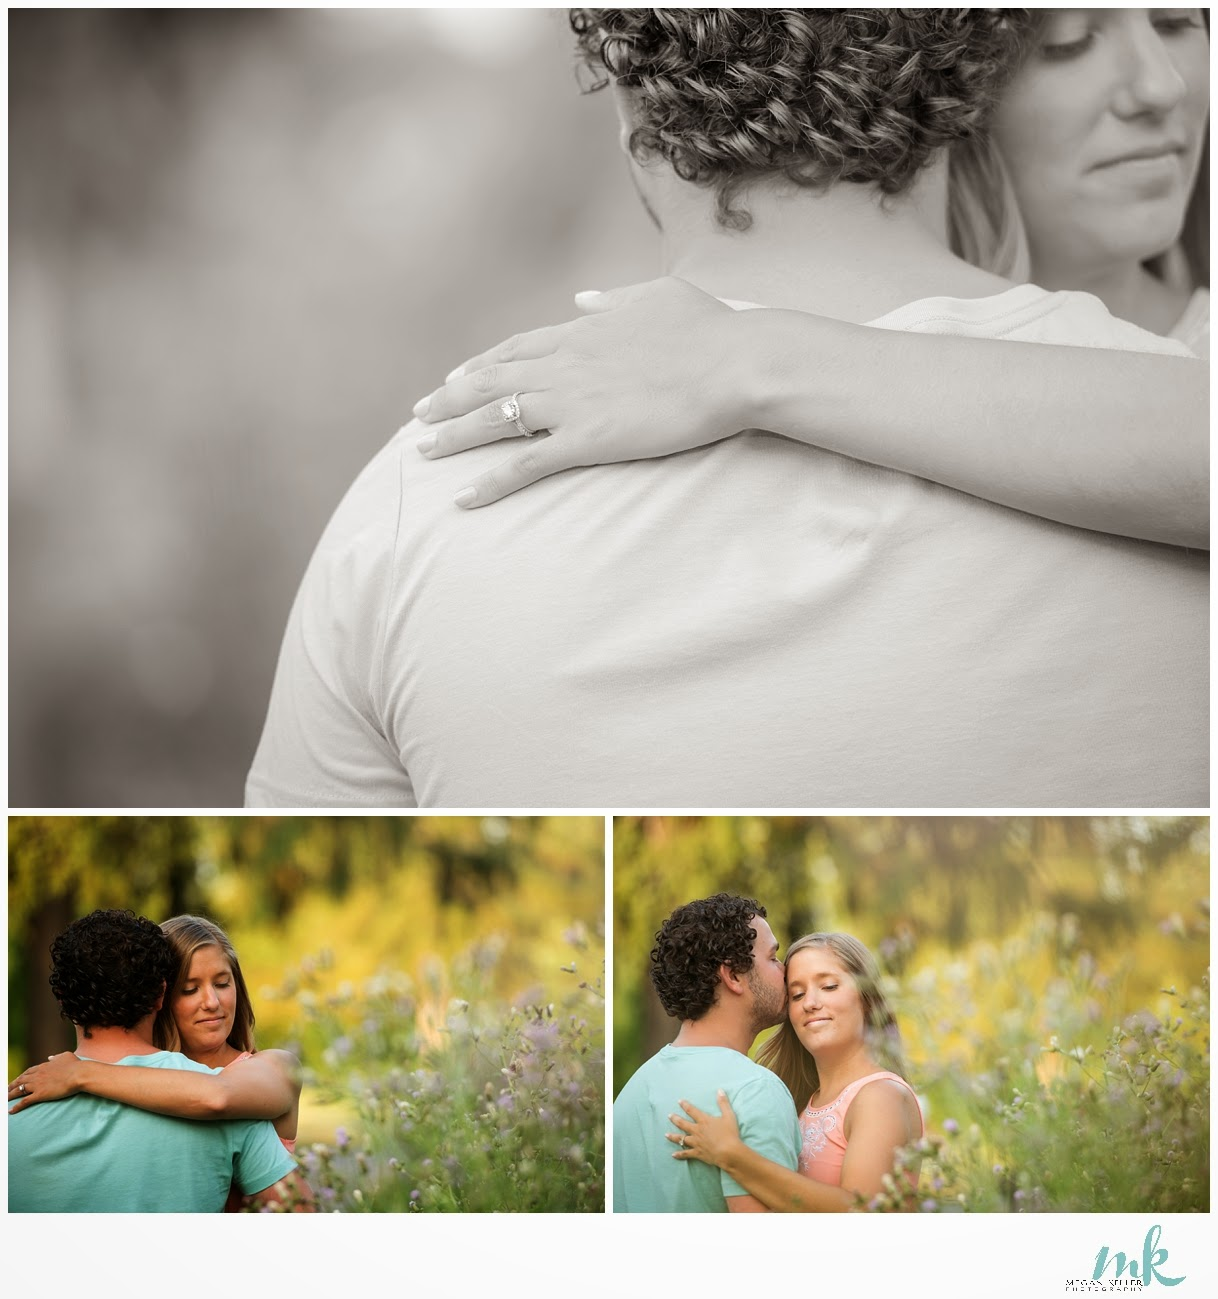 Breanna and Lucas Engagement Session Breanna and Lucas Engagement Session 2014 07 02 0006